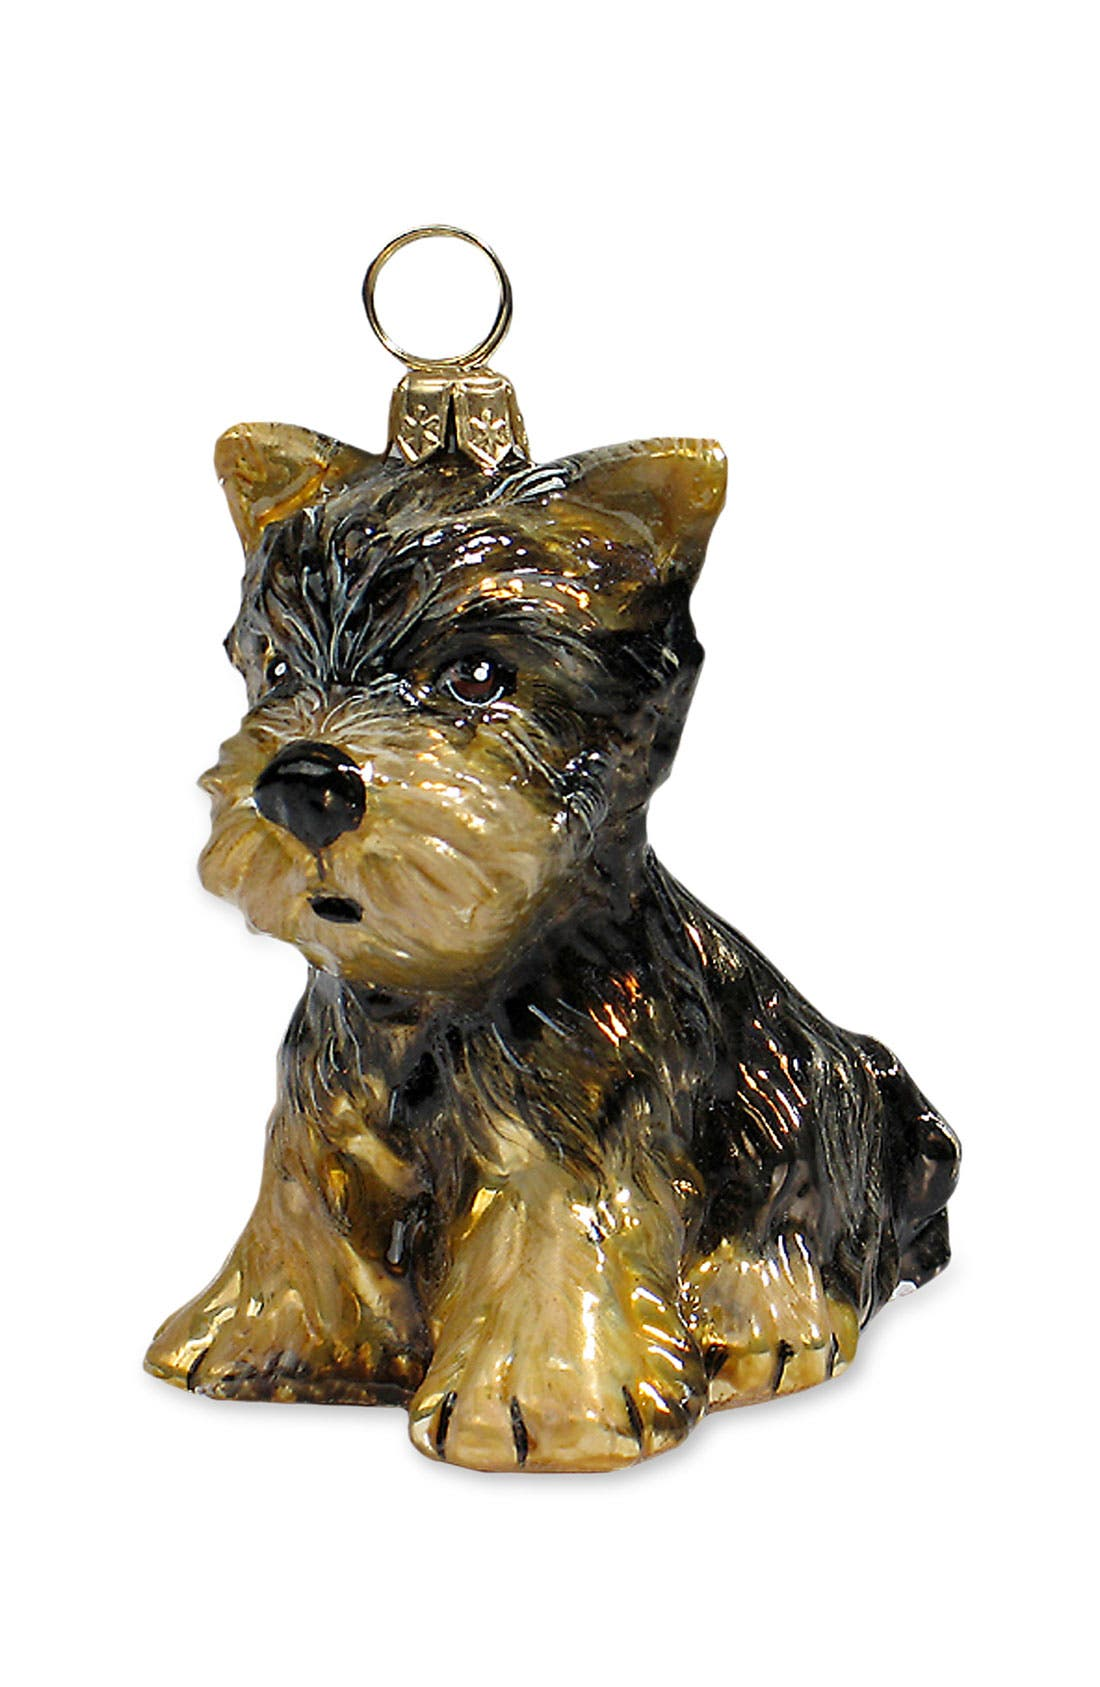 'Yorkie Puppy' Dog Ornament,                             Main thumbnail 1, color,                             YORKSHIRE TERRIER PUPPY